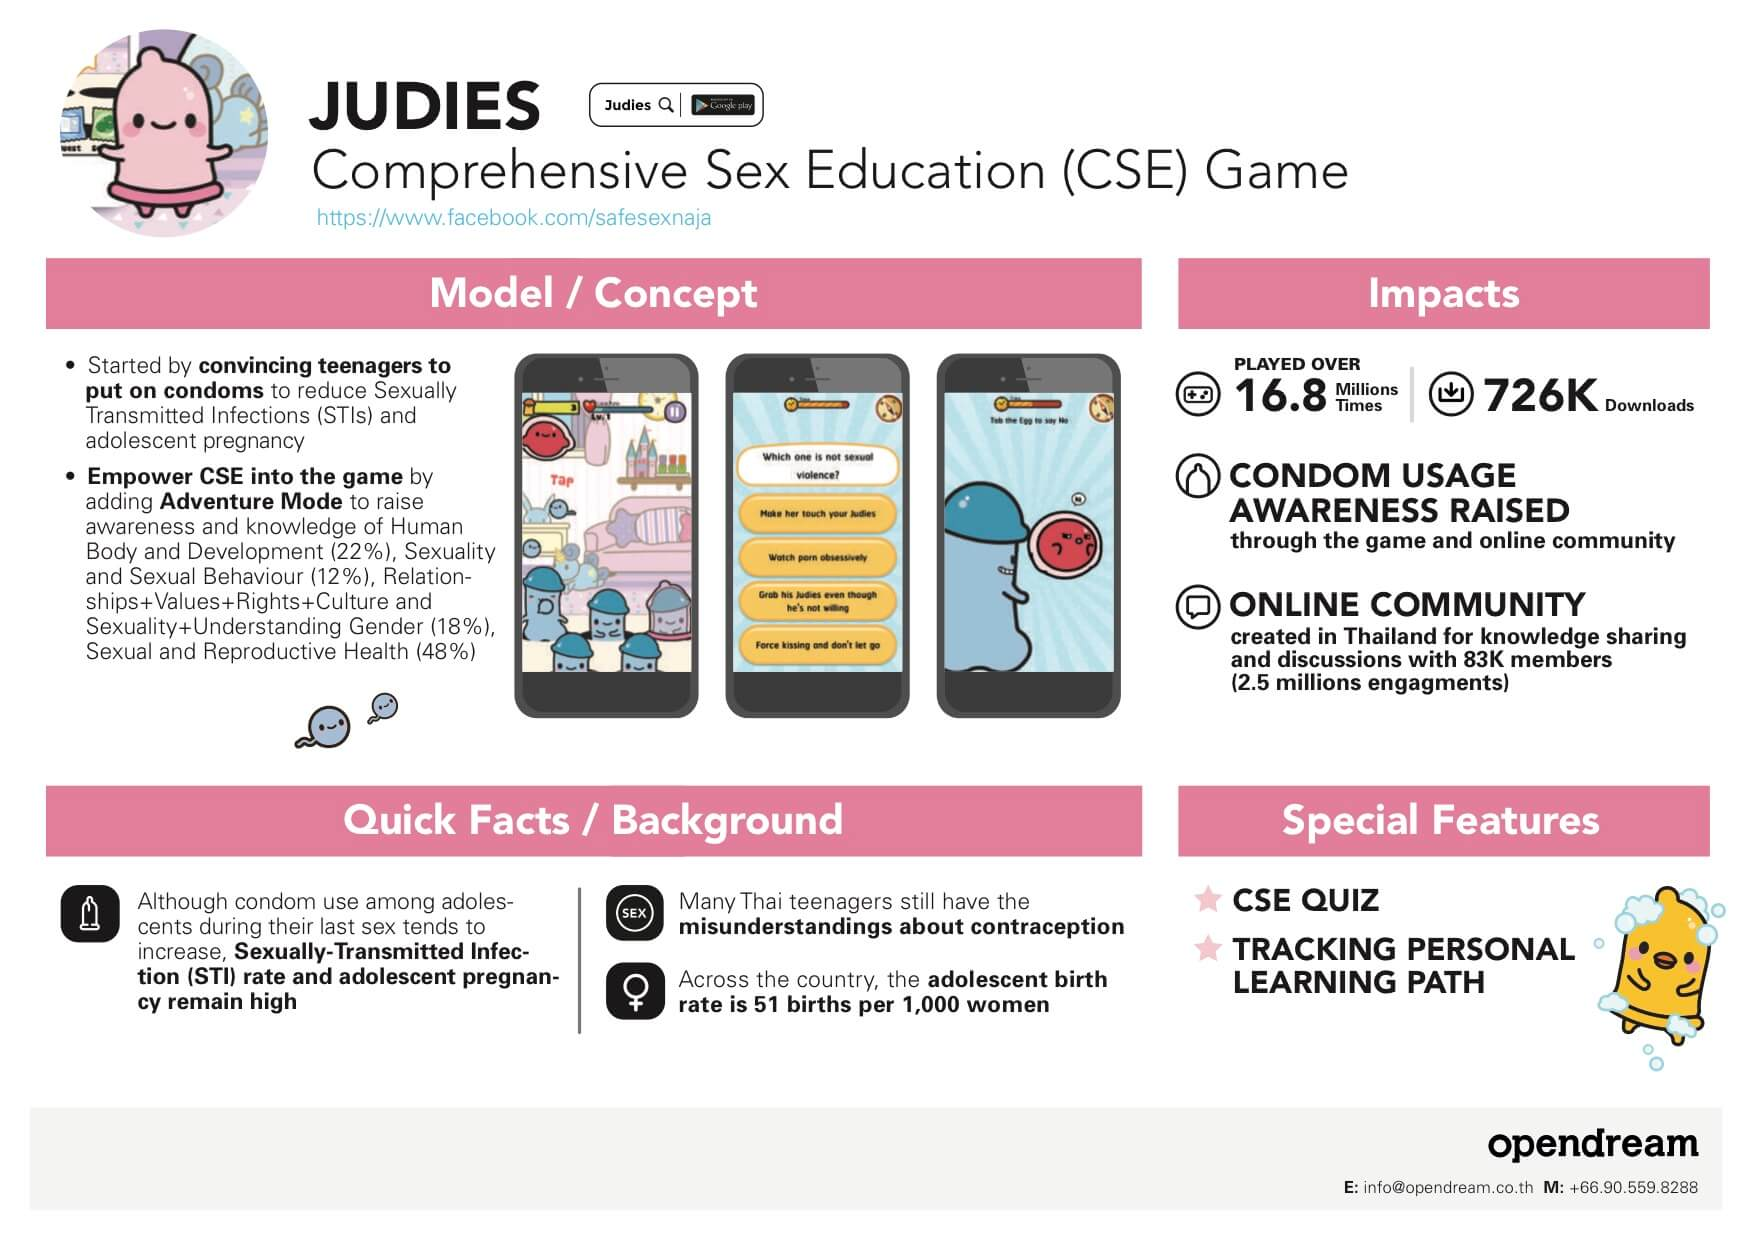 Judies Factsheet